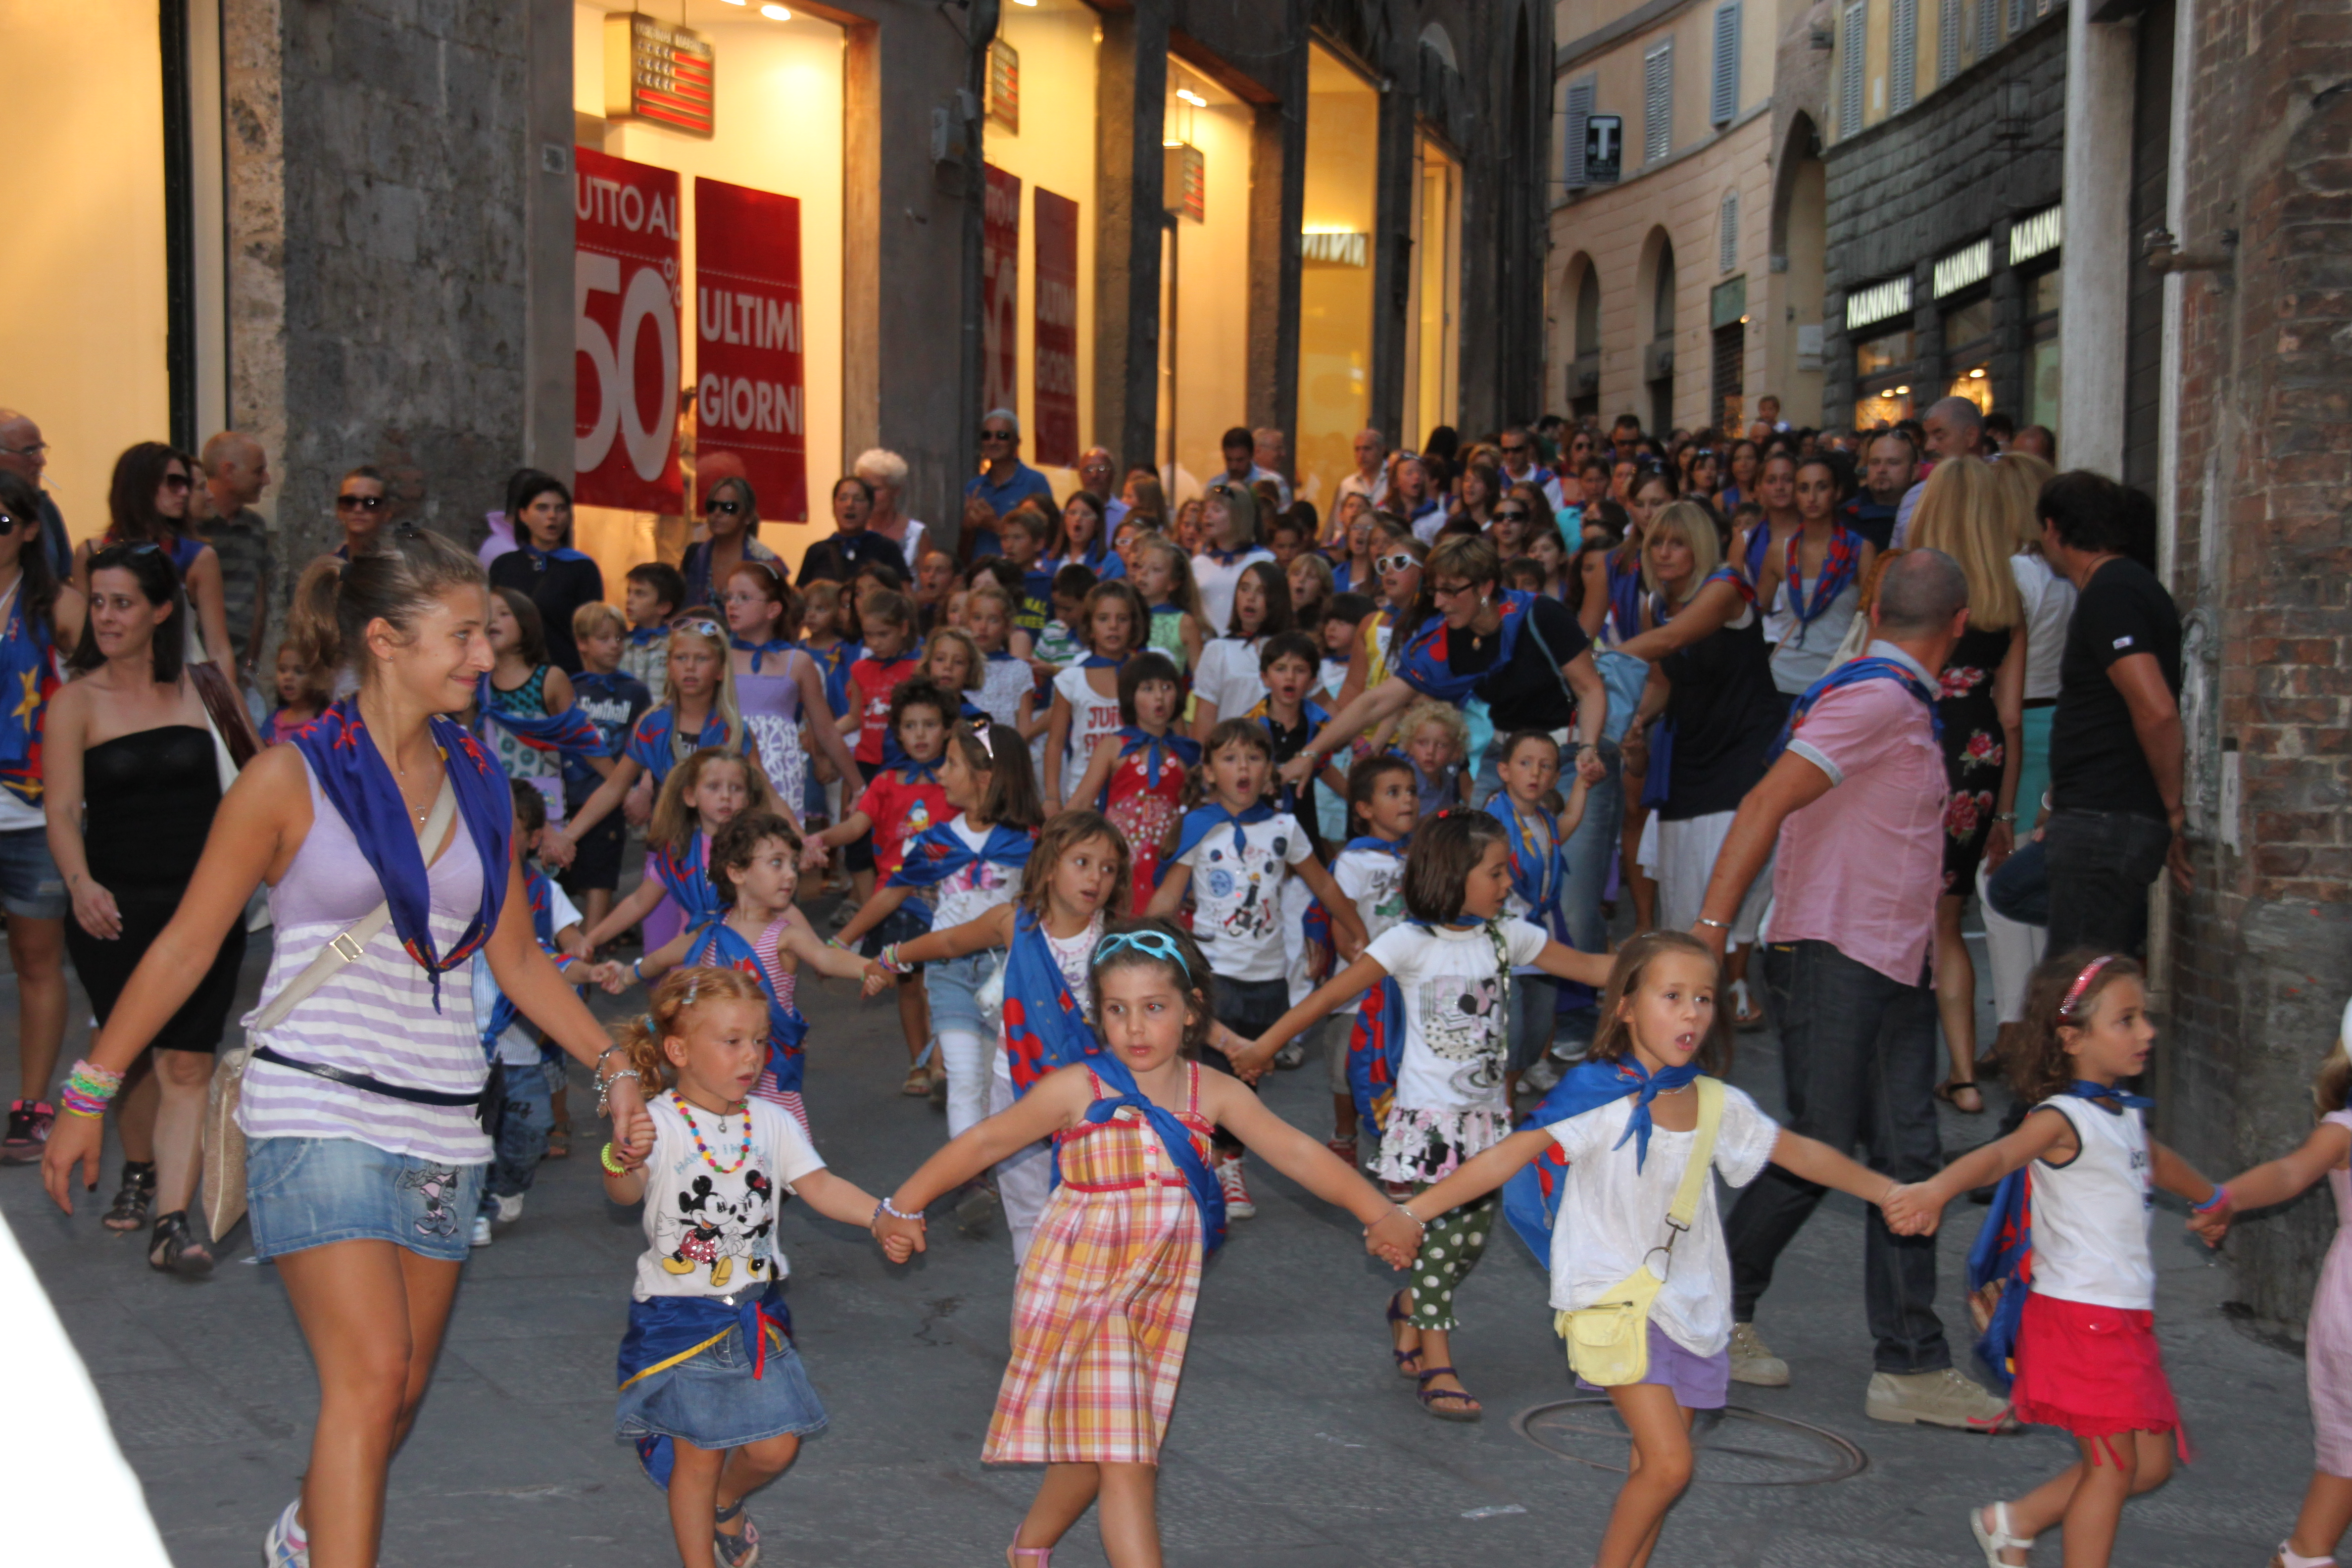 The next generation of contradaioli members parade through the streets all wearing their contrada scarf and singing the contrada hymns